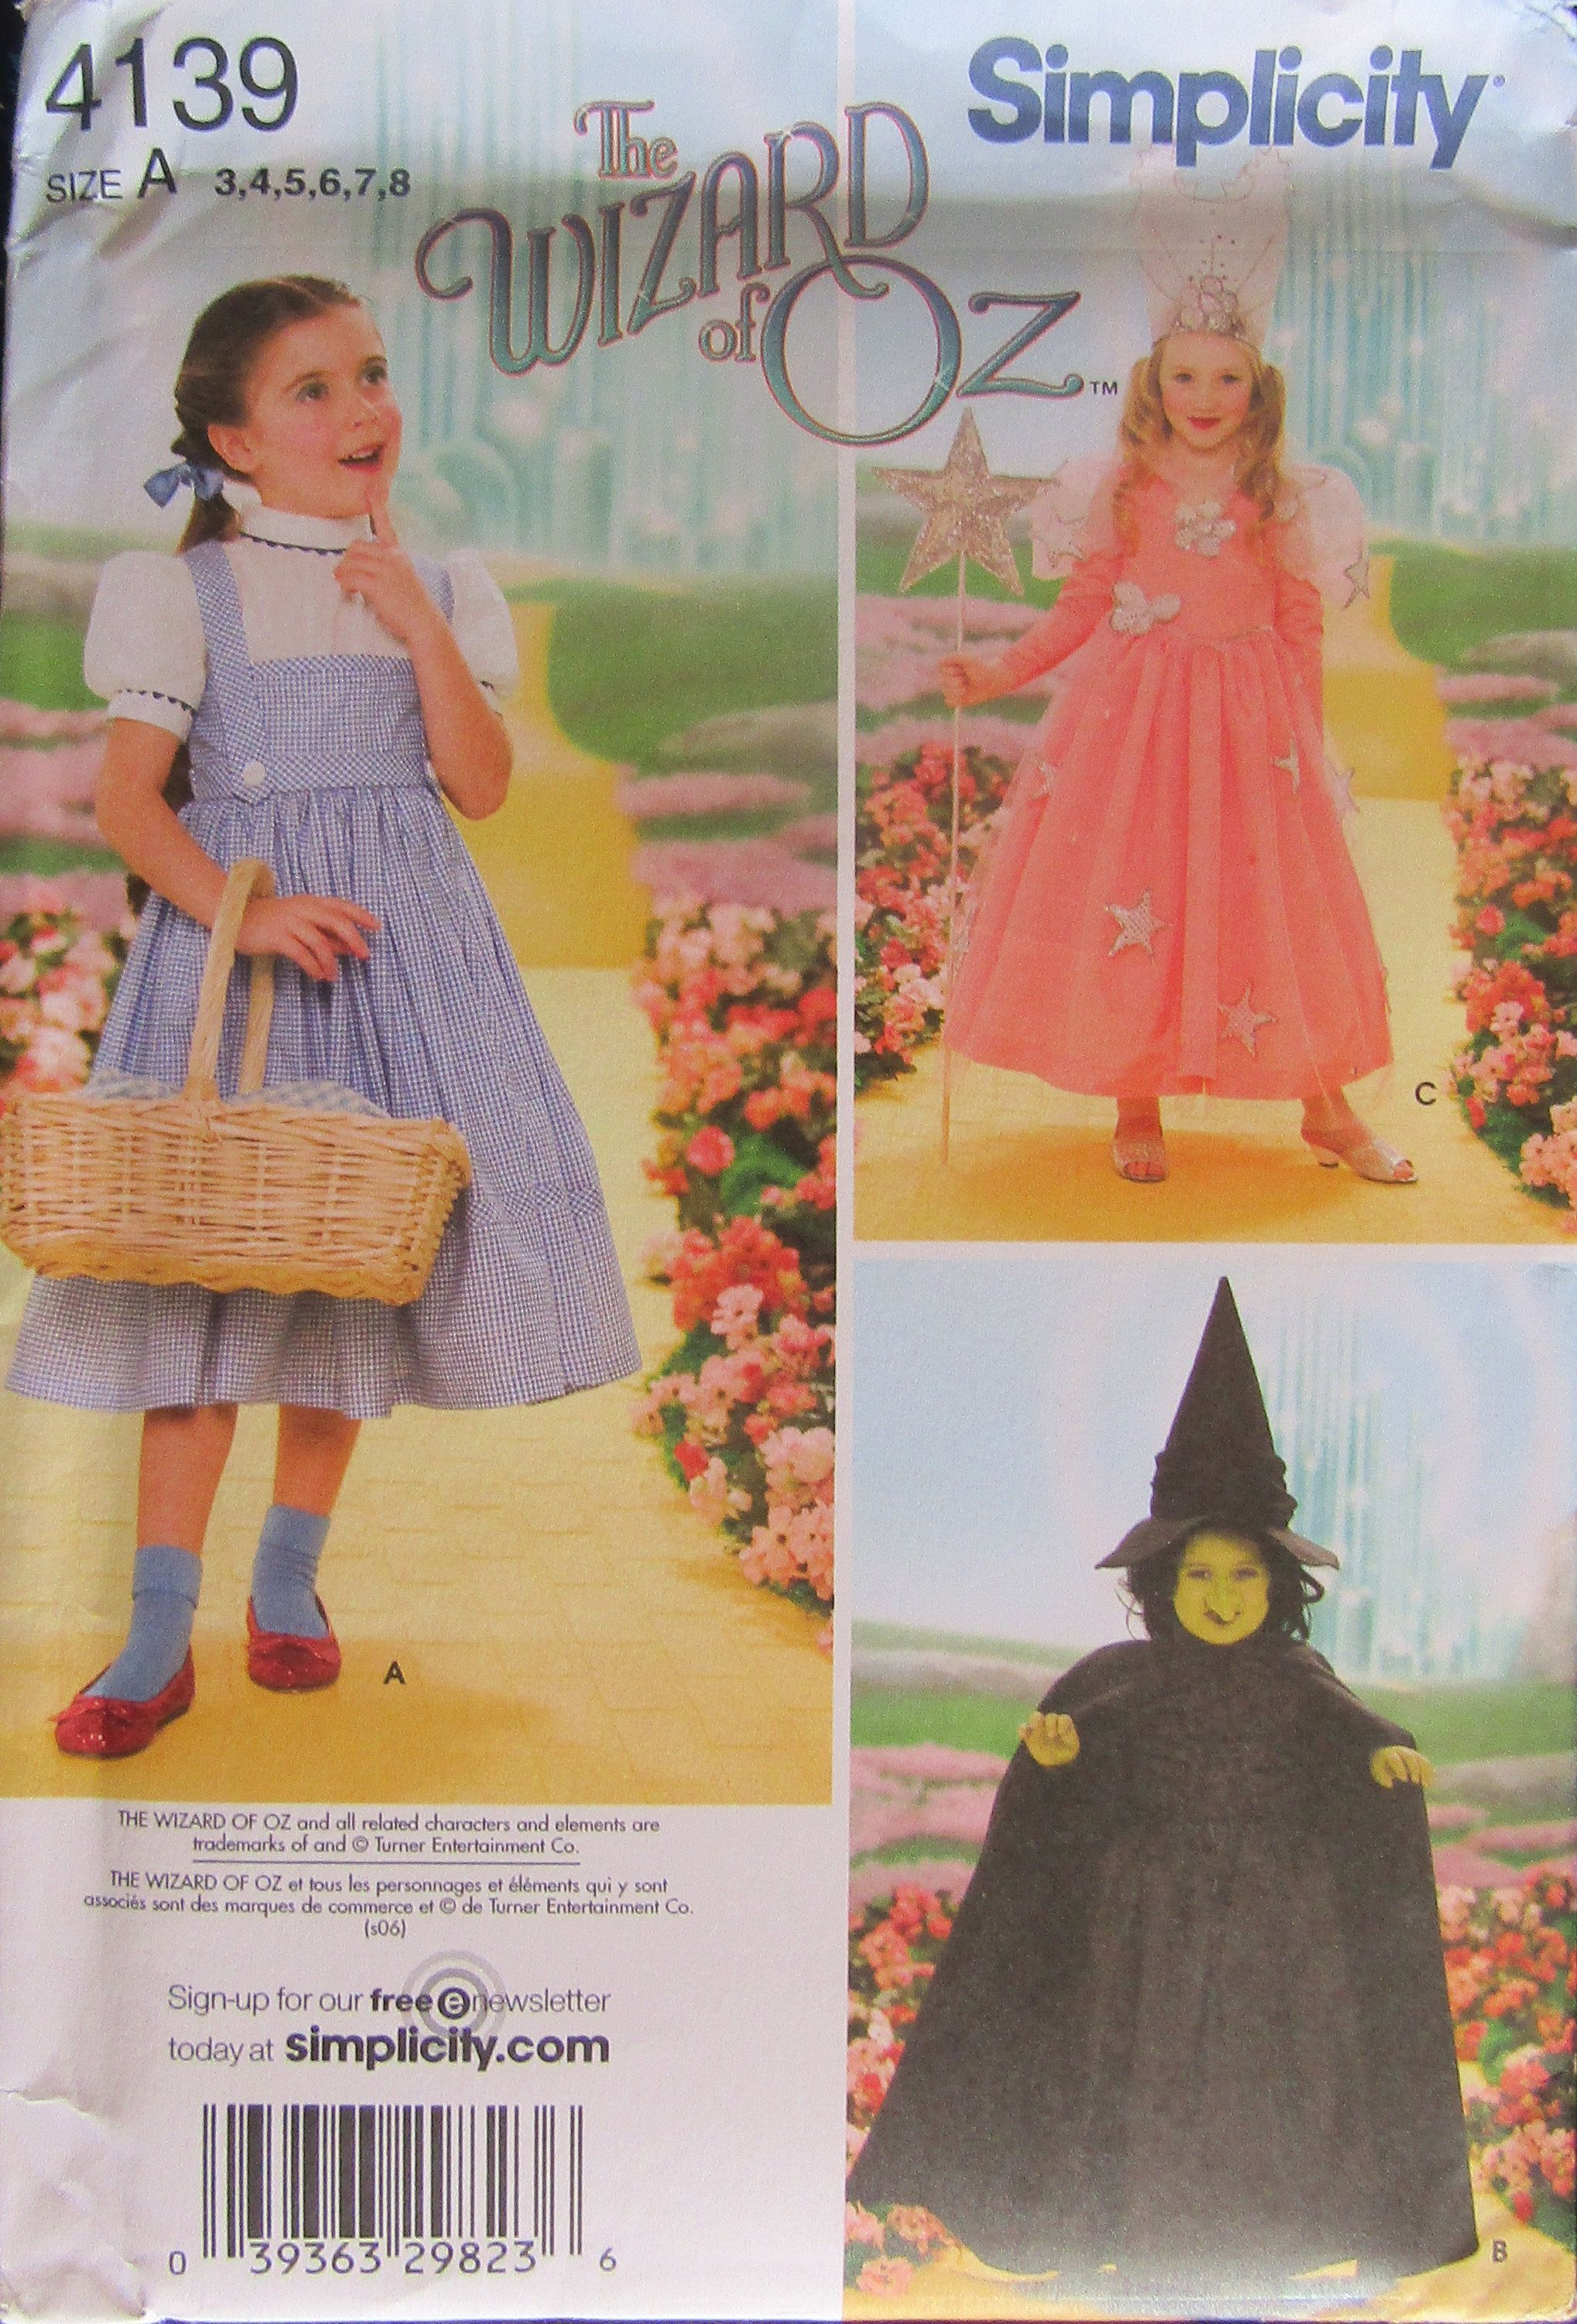 New Simplicity Sewing Pattern Cosplay Fairytale Victorian Halloween Costume UPIC